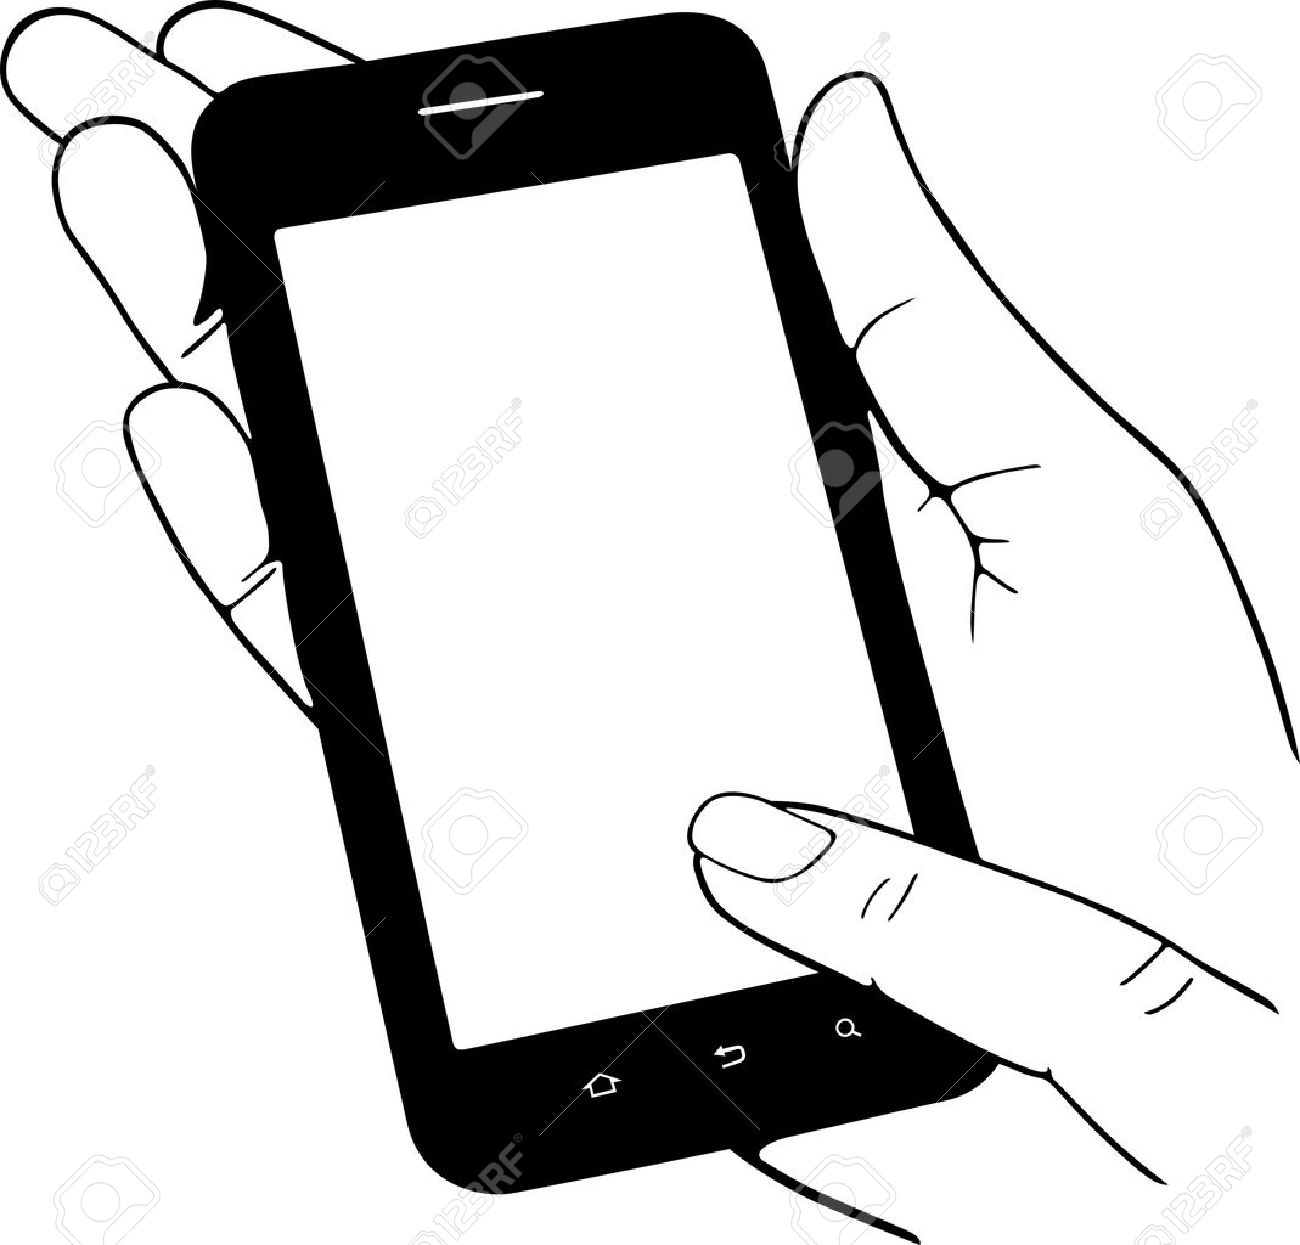 1300x1245 Mobile Phone In The Hand Royalty Free Cliparts, Vectors, And Stock